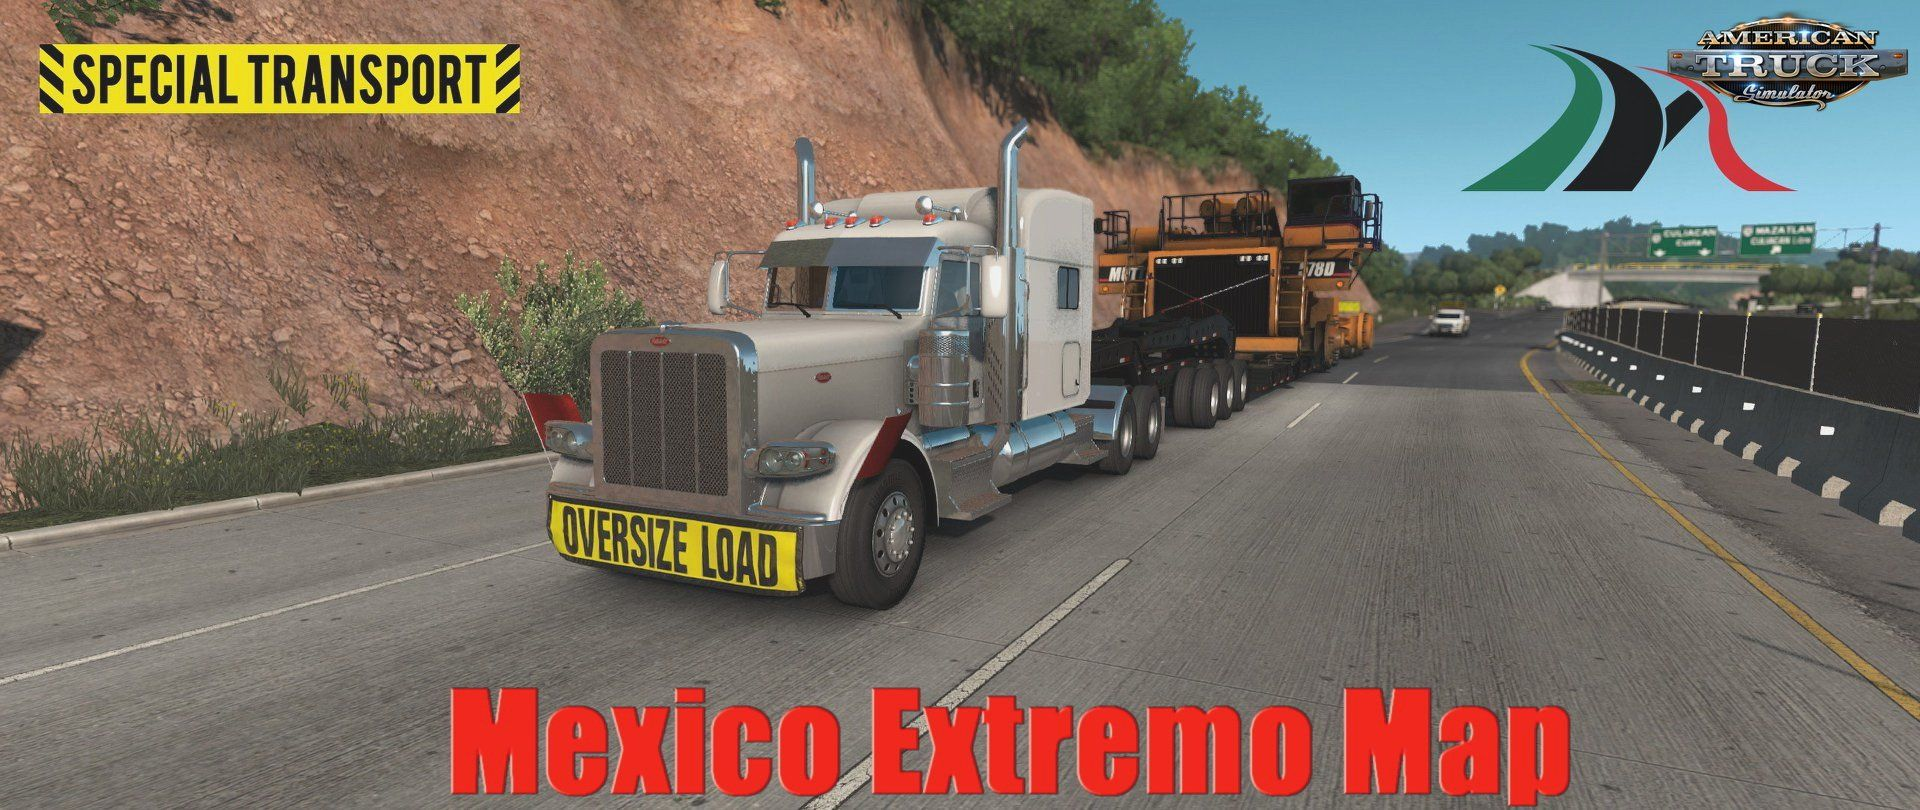 Mexico Extremo Map V2 1 8 1 34 X For Ats